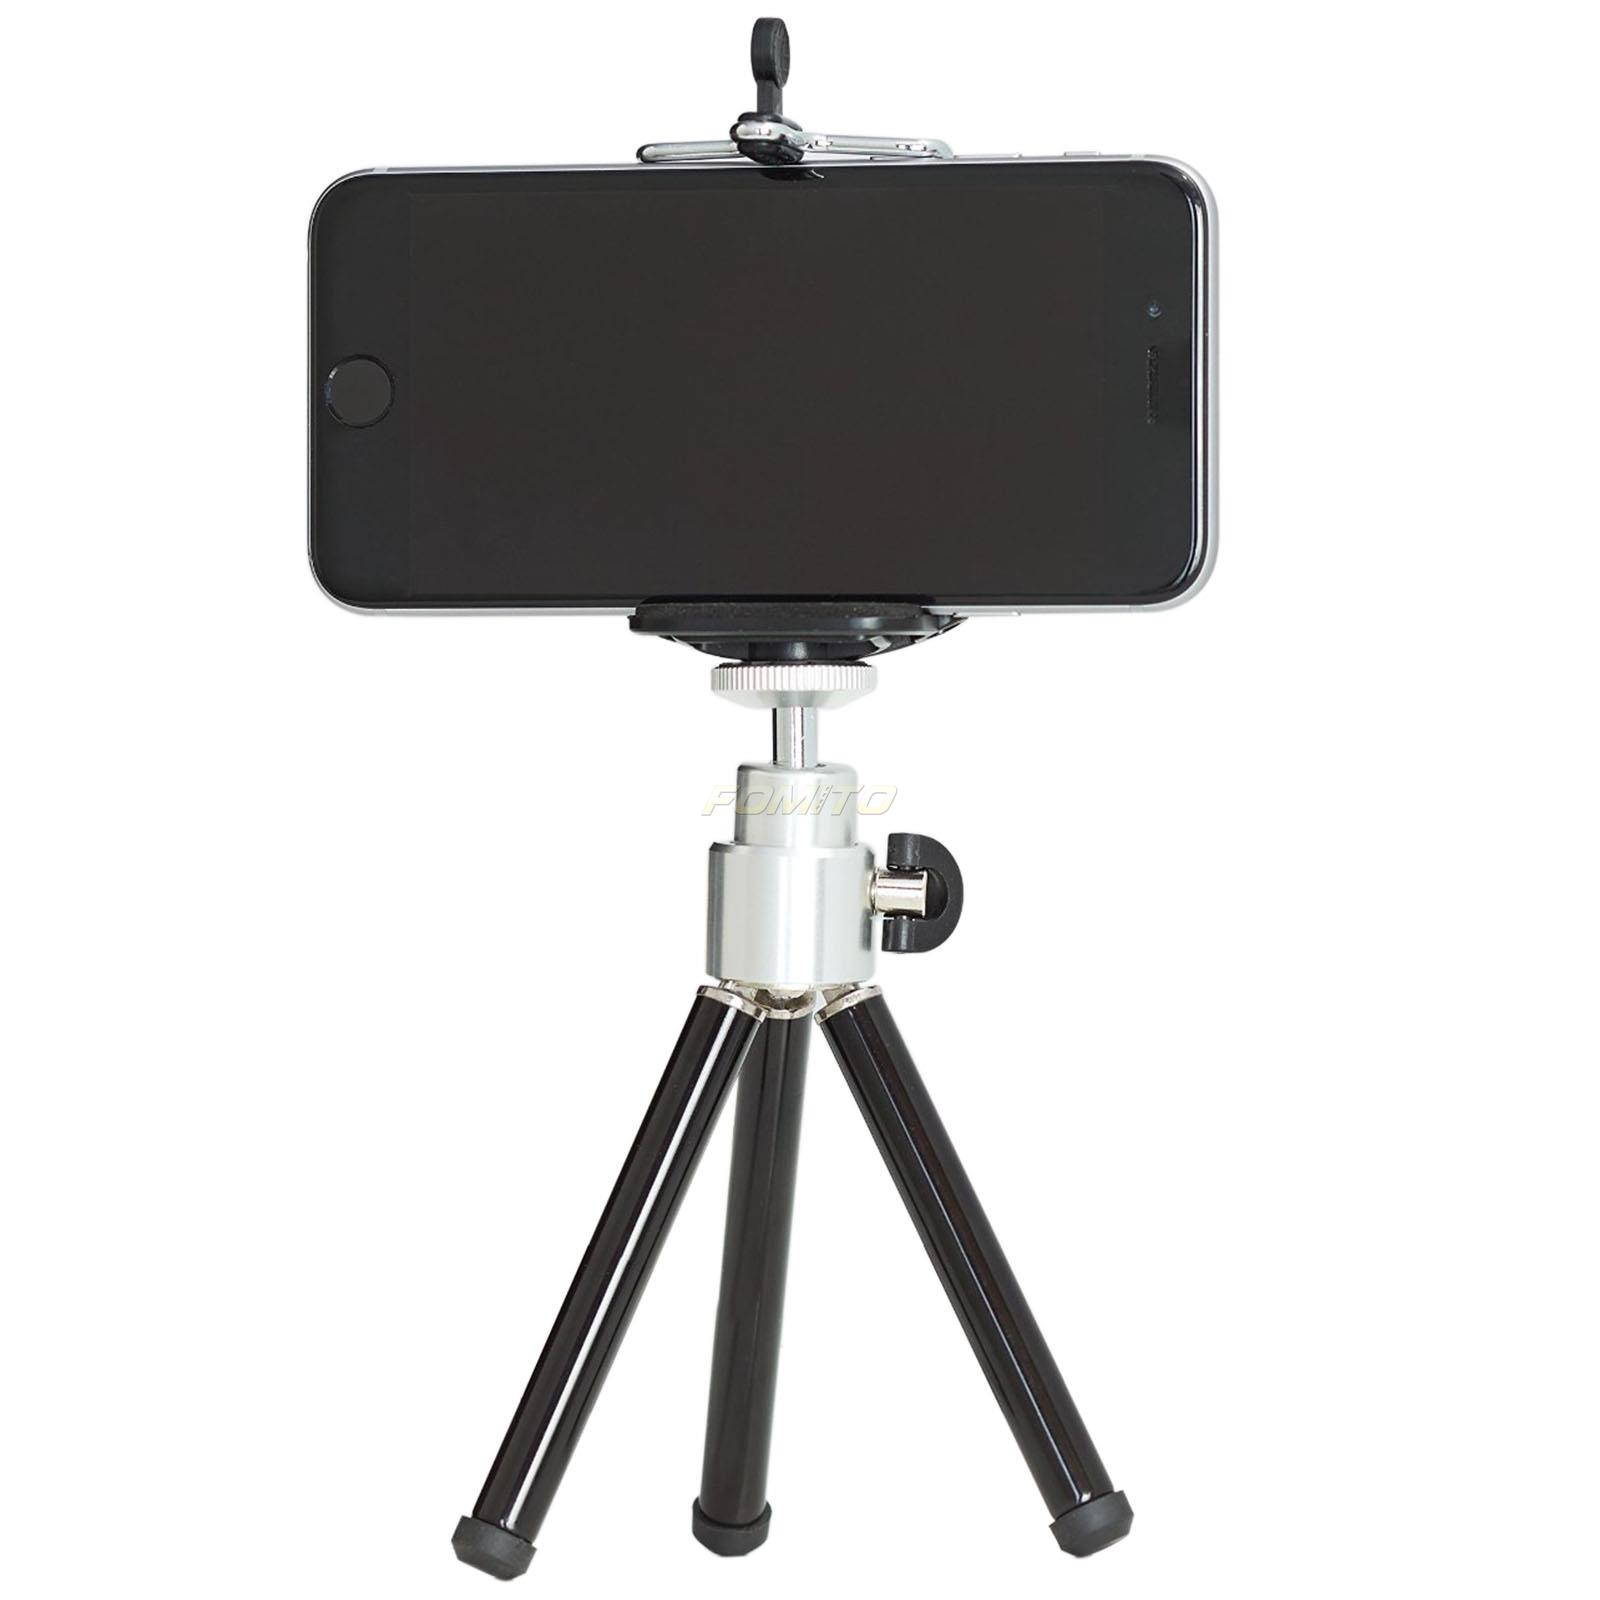 Fomito Mini Tripod Desktop for samsung phone for iphone 6 5S 5 For SLR/Digital Camera with Black Color(ONLY Tripod)(China (Mainland))